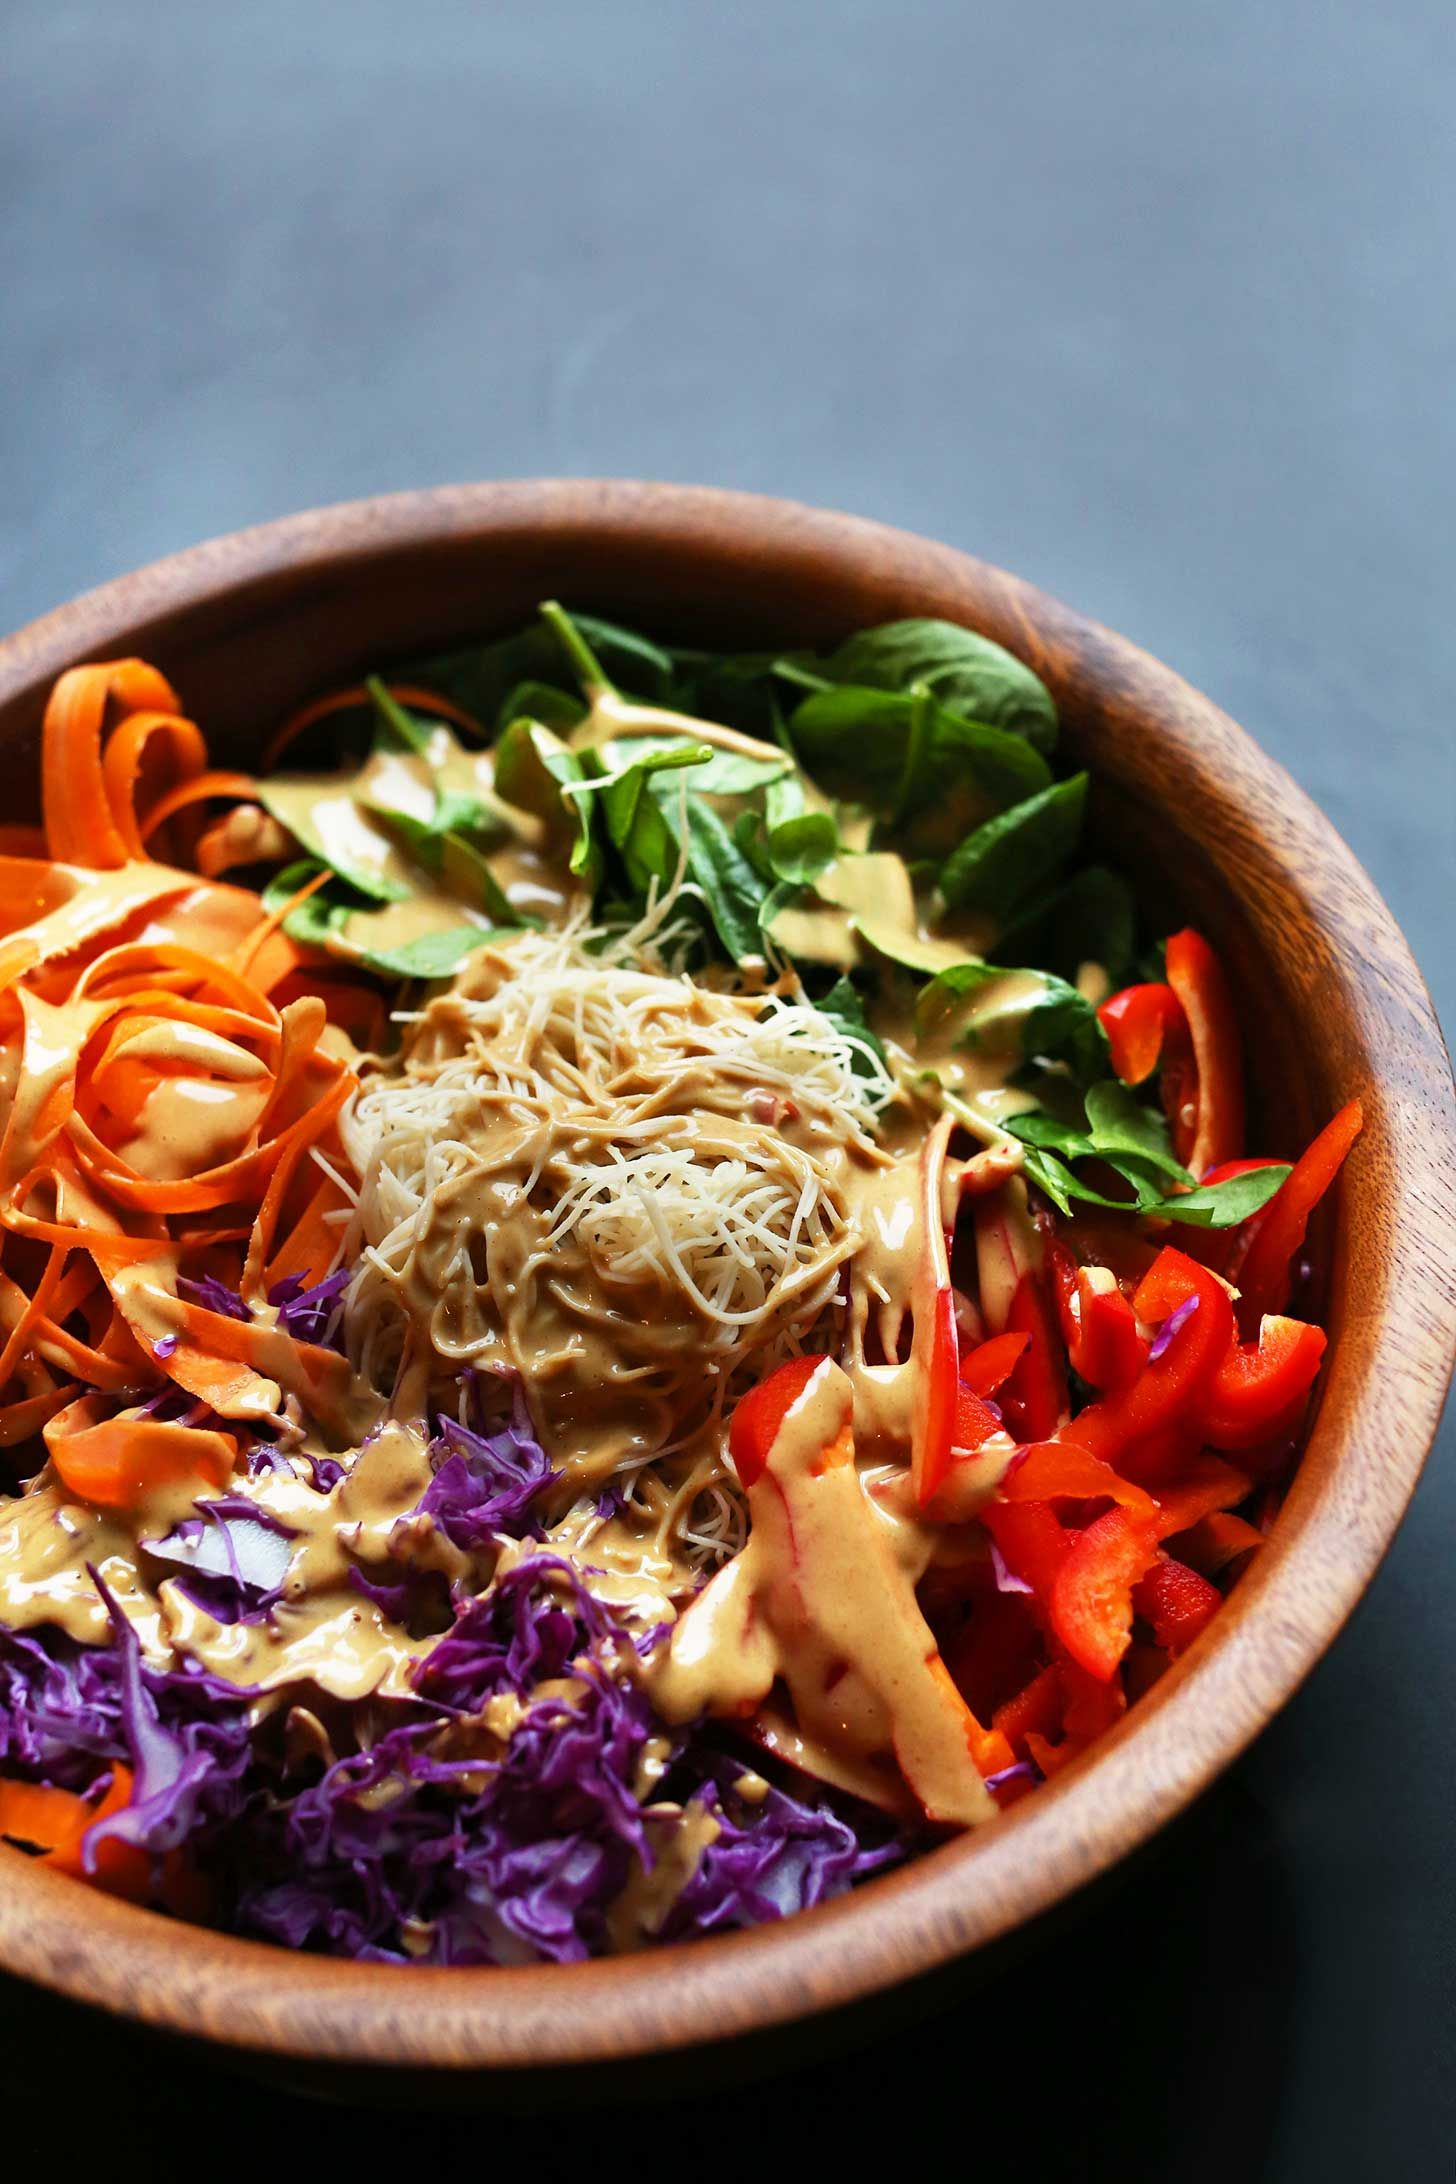 Blissed Out Thai Salad With Peanut Tempeh